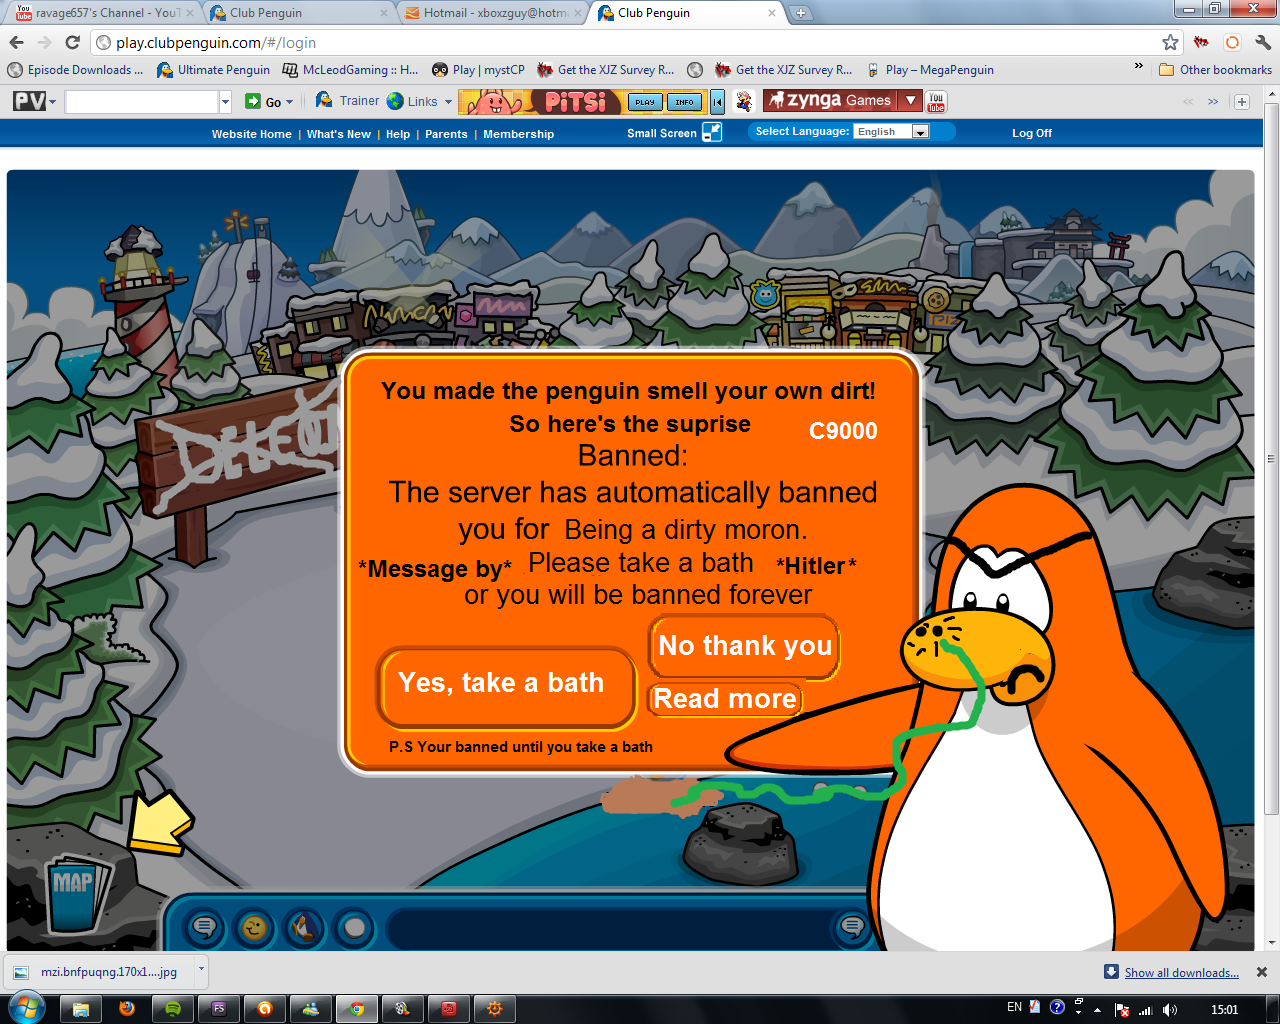 Funny club penguin bans